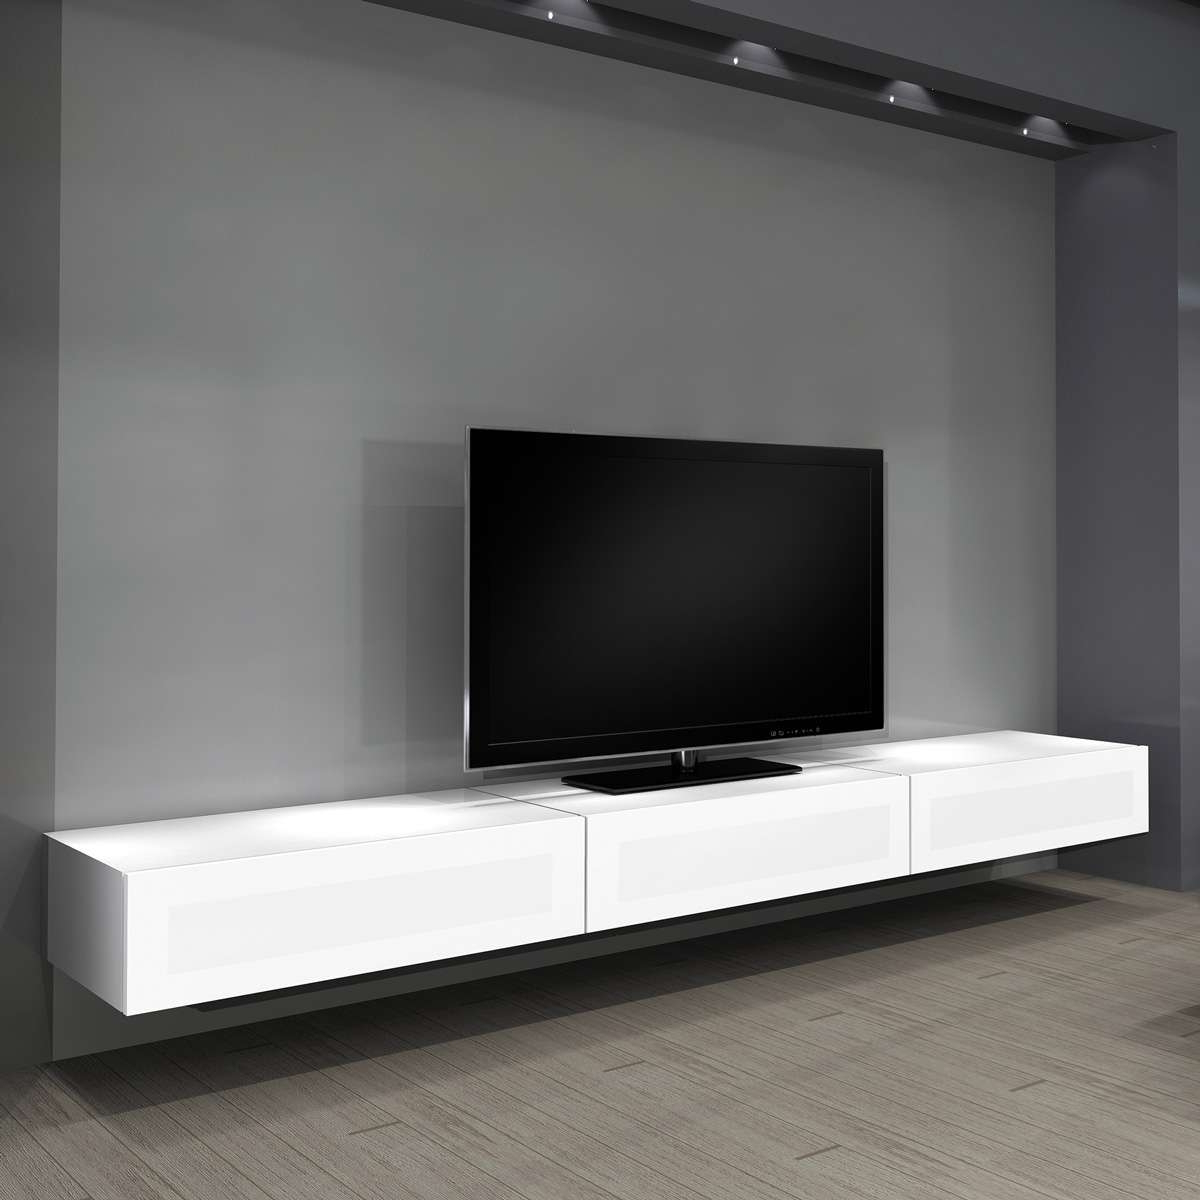 Ikea Wall Mounted Tv Cabinets In Well Known Ikea Tv Wall Mount – Wall Ideas (Gallery 3 of 20)